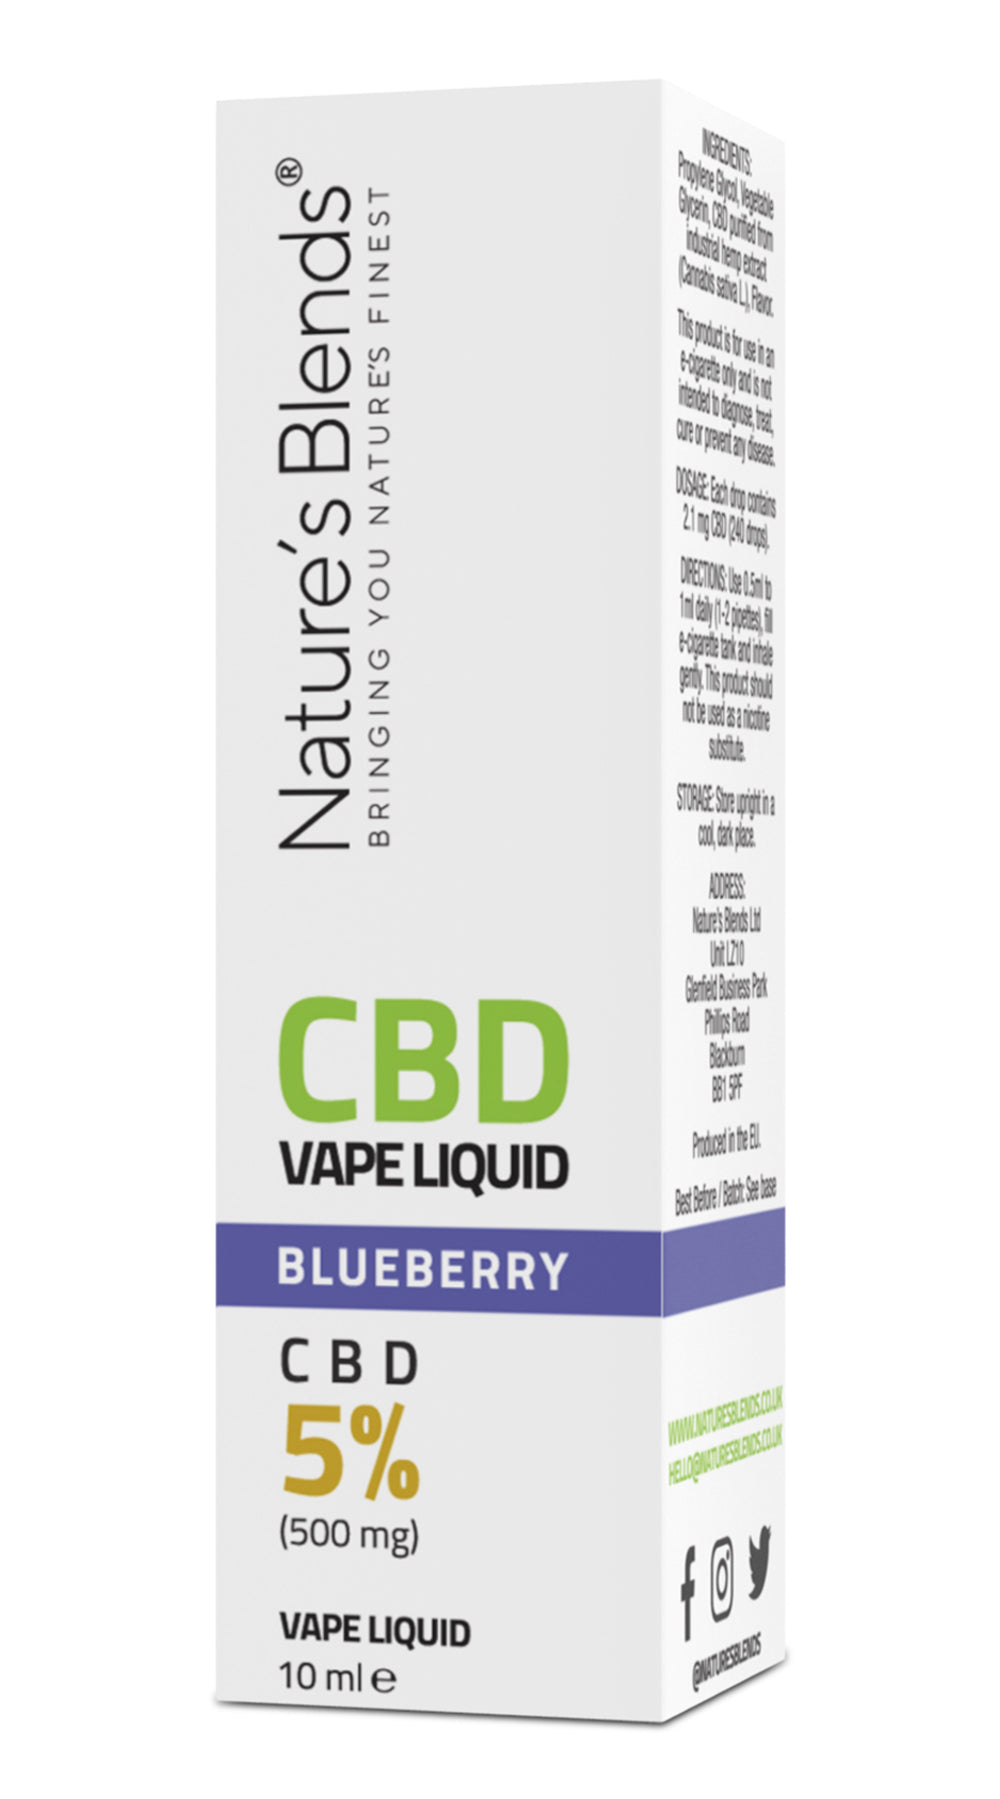 A blueberry flavour 500mg cbd vape packaging by natures blends